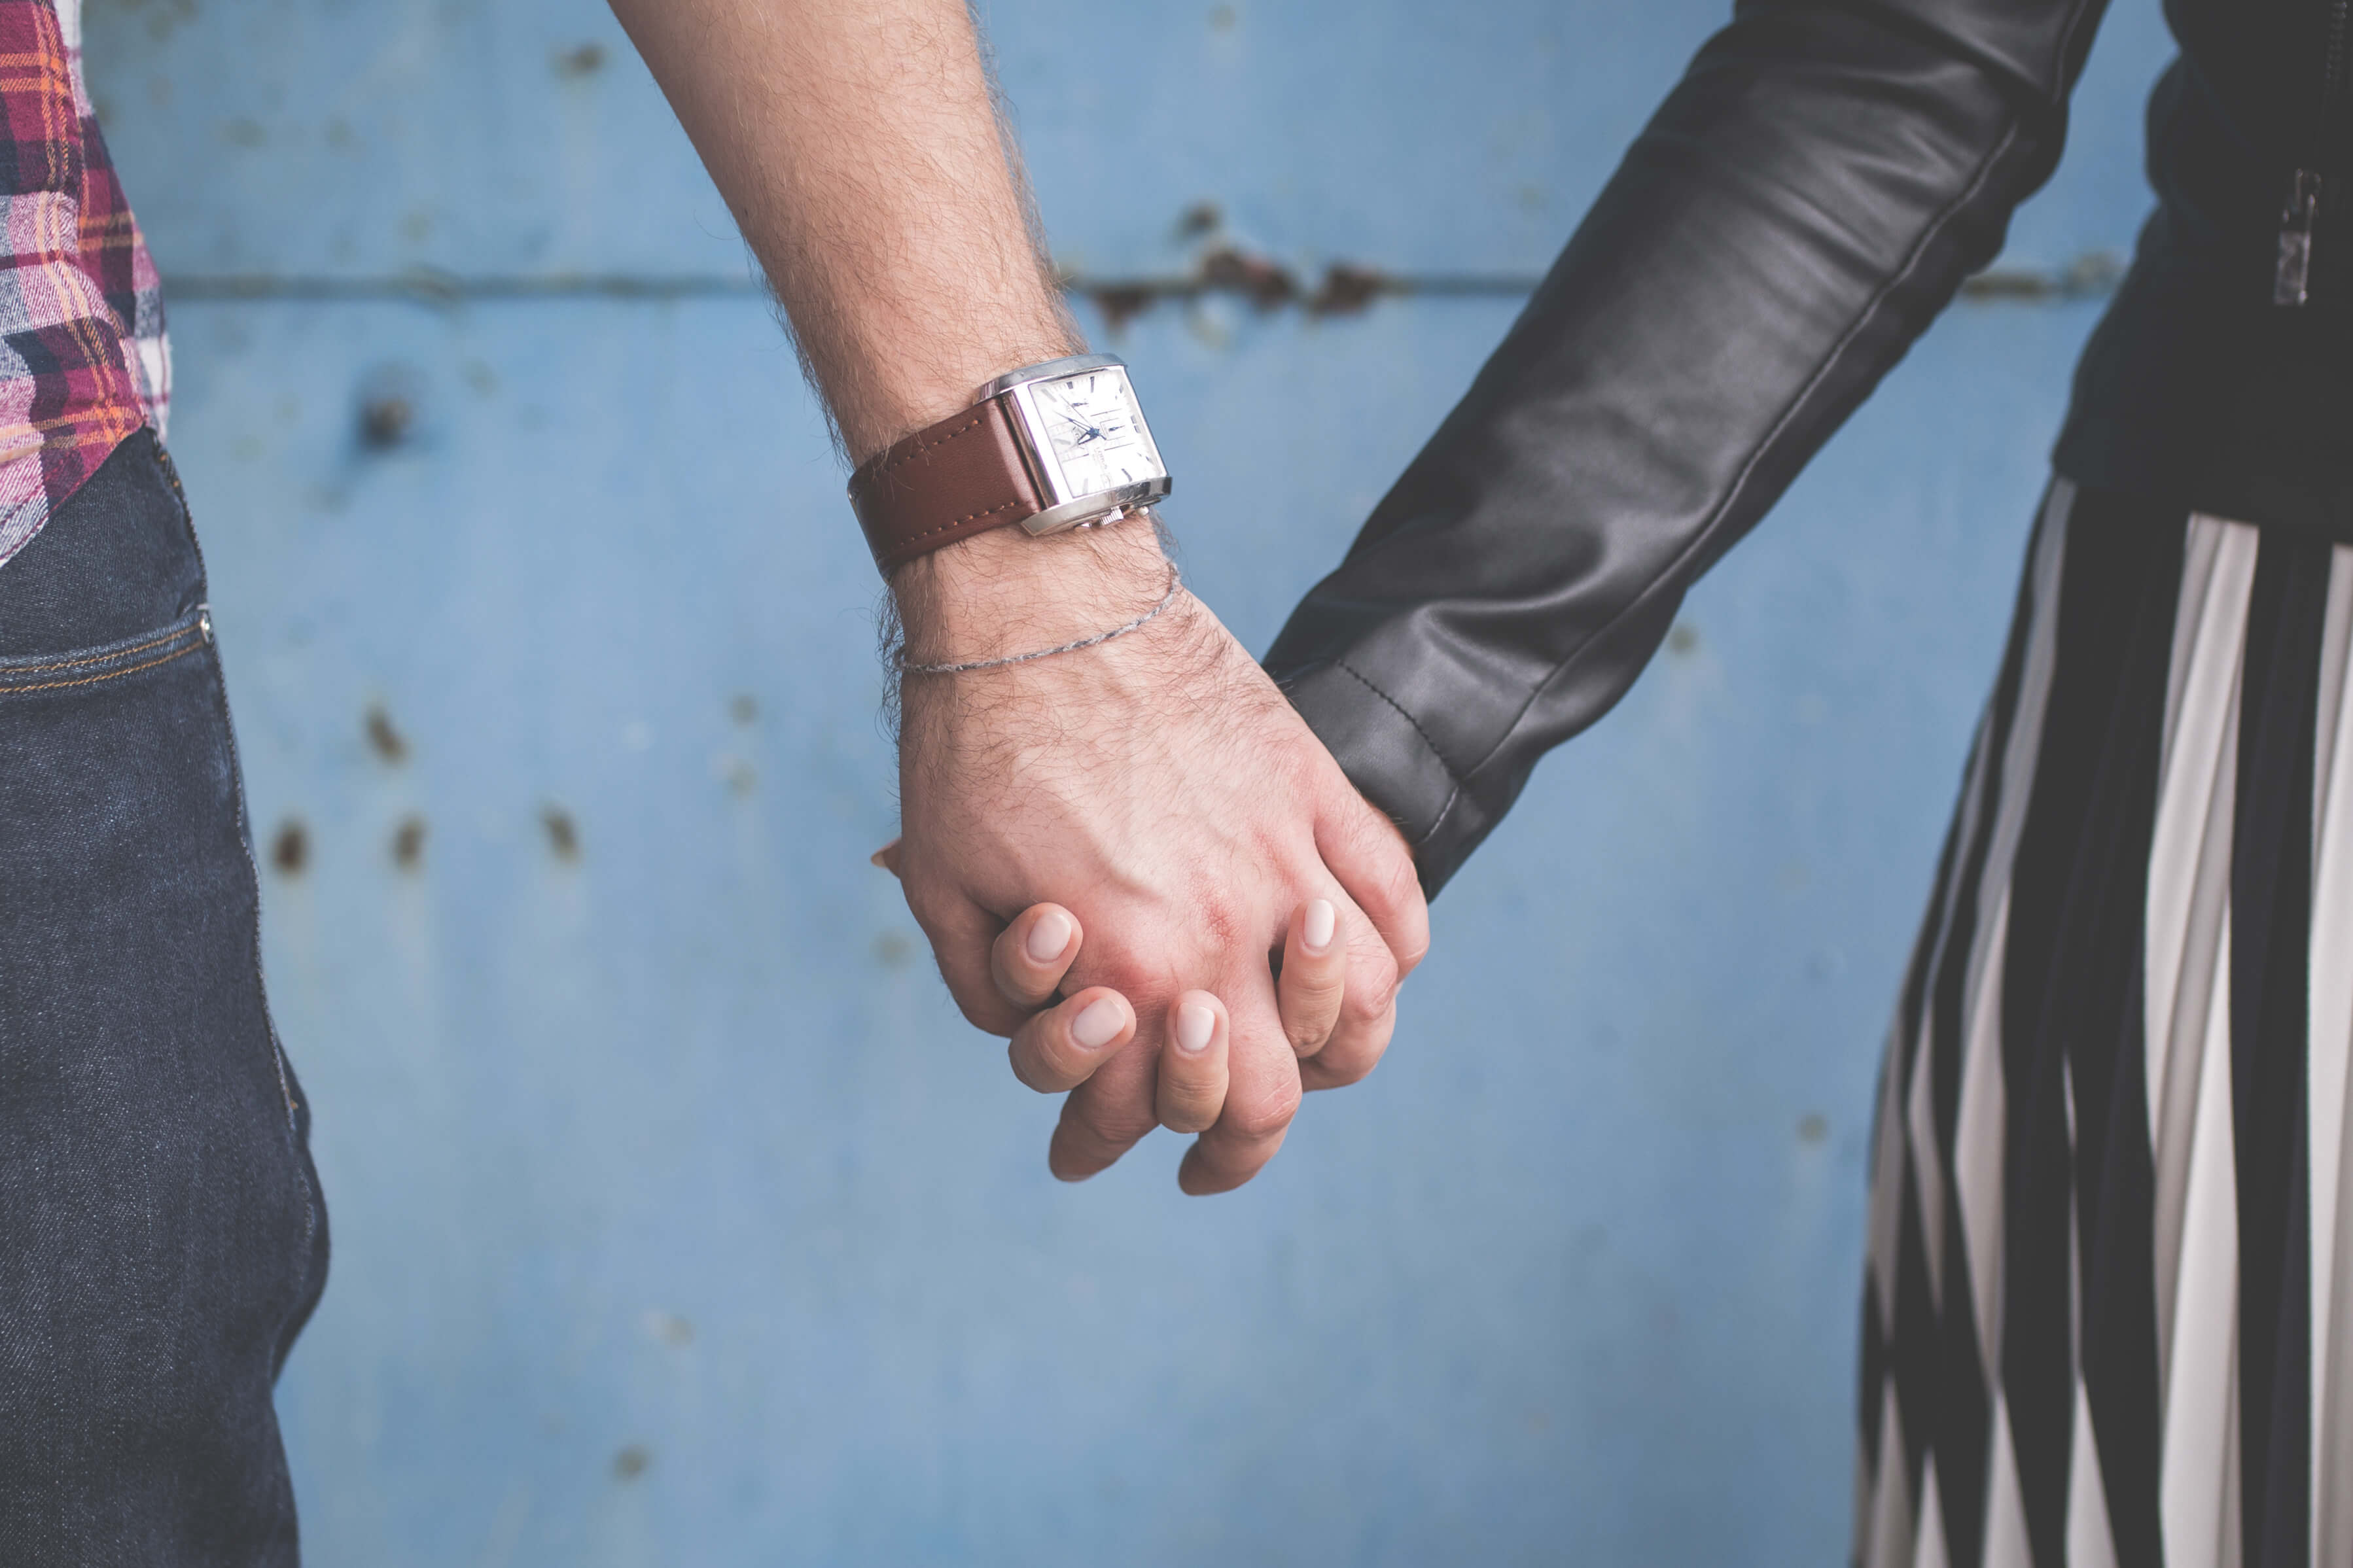 Follow These Tips to Get Back in The Dating Scene After 50